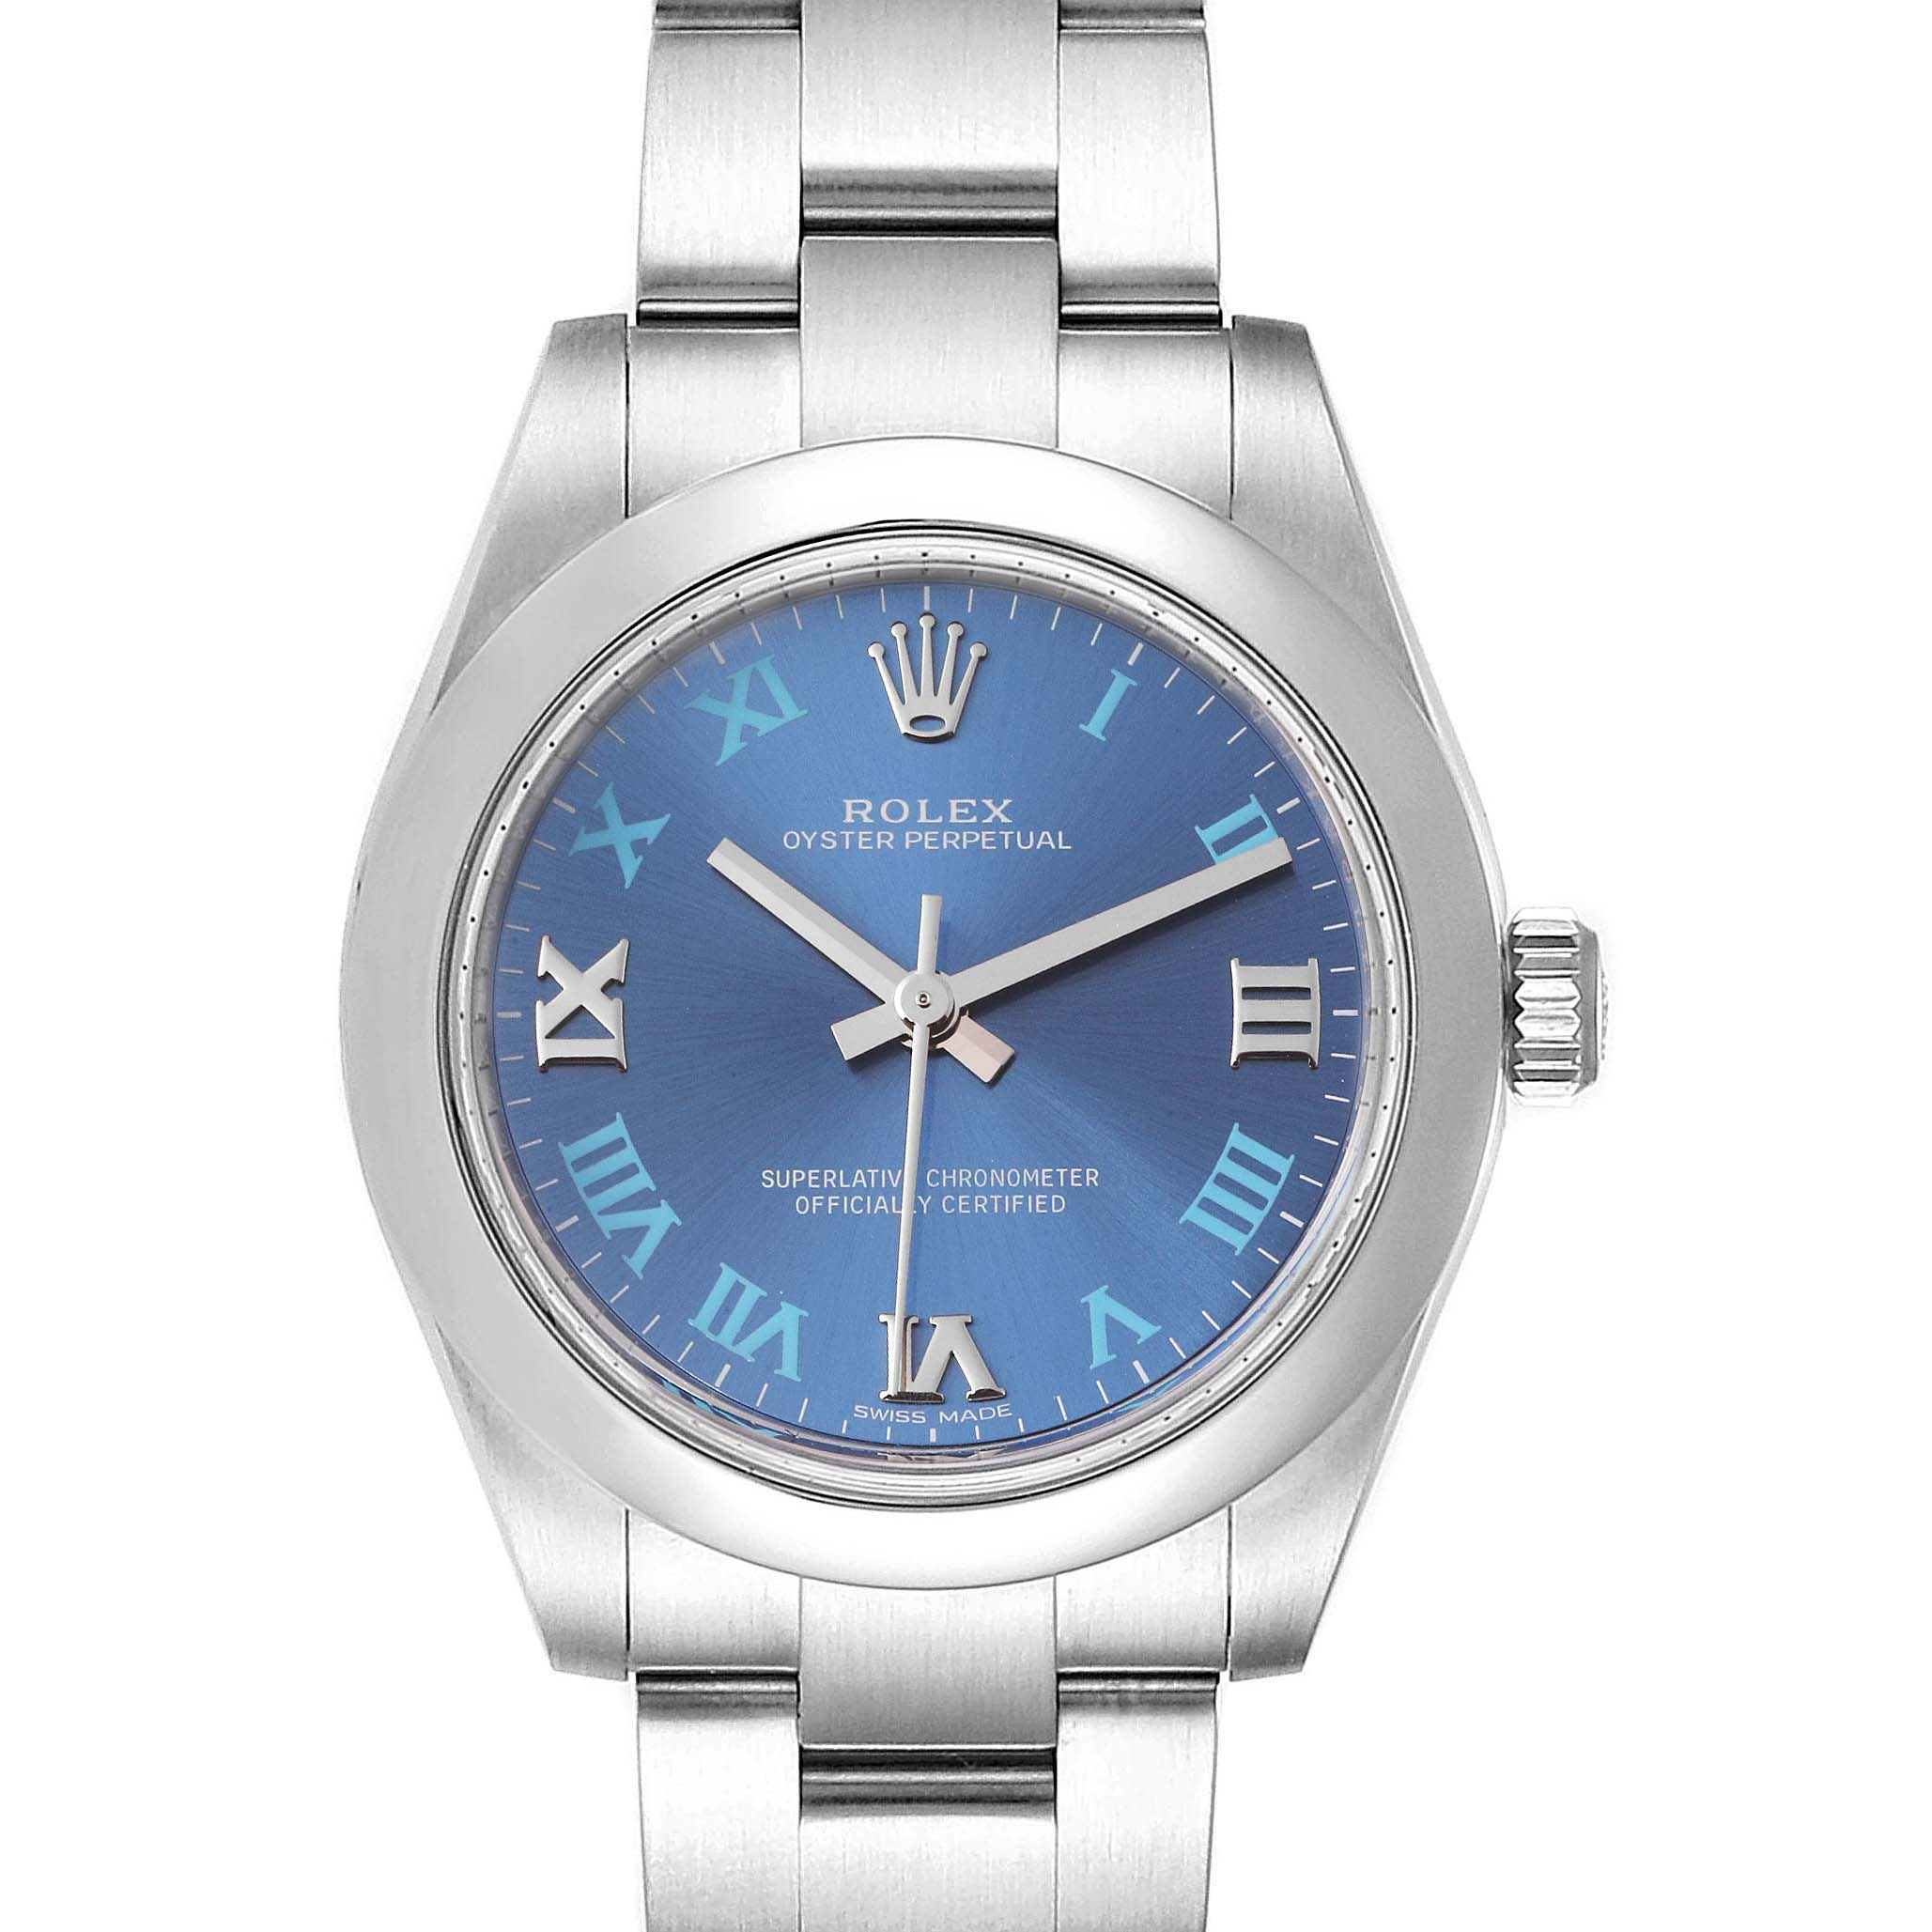 Rolex Oyster Perpetual Midsize 31 Blue Dial Ladies Watch 177200 Box Card